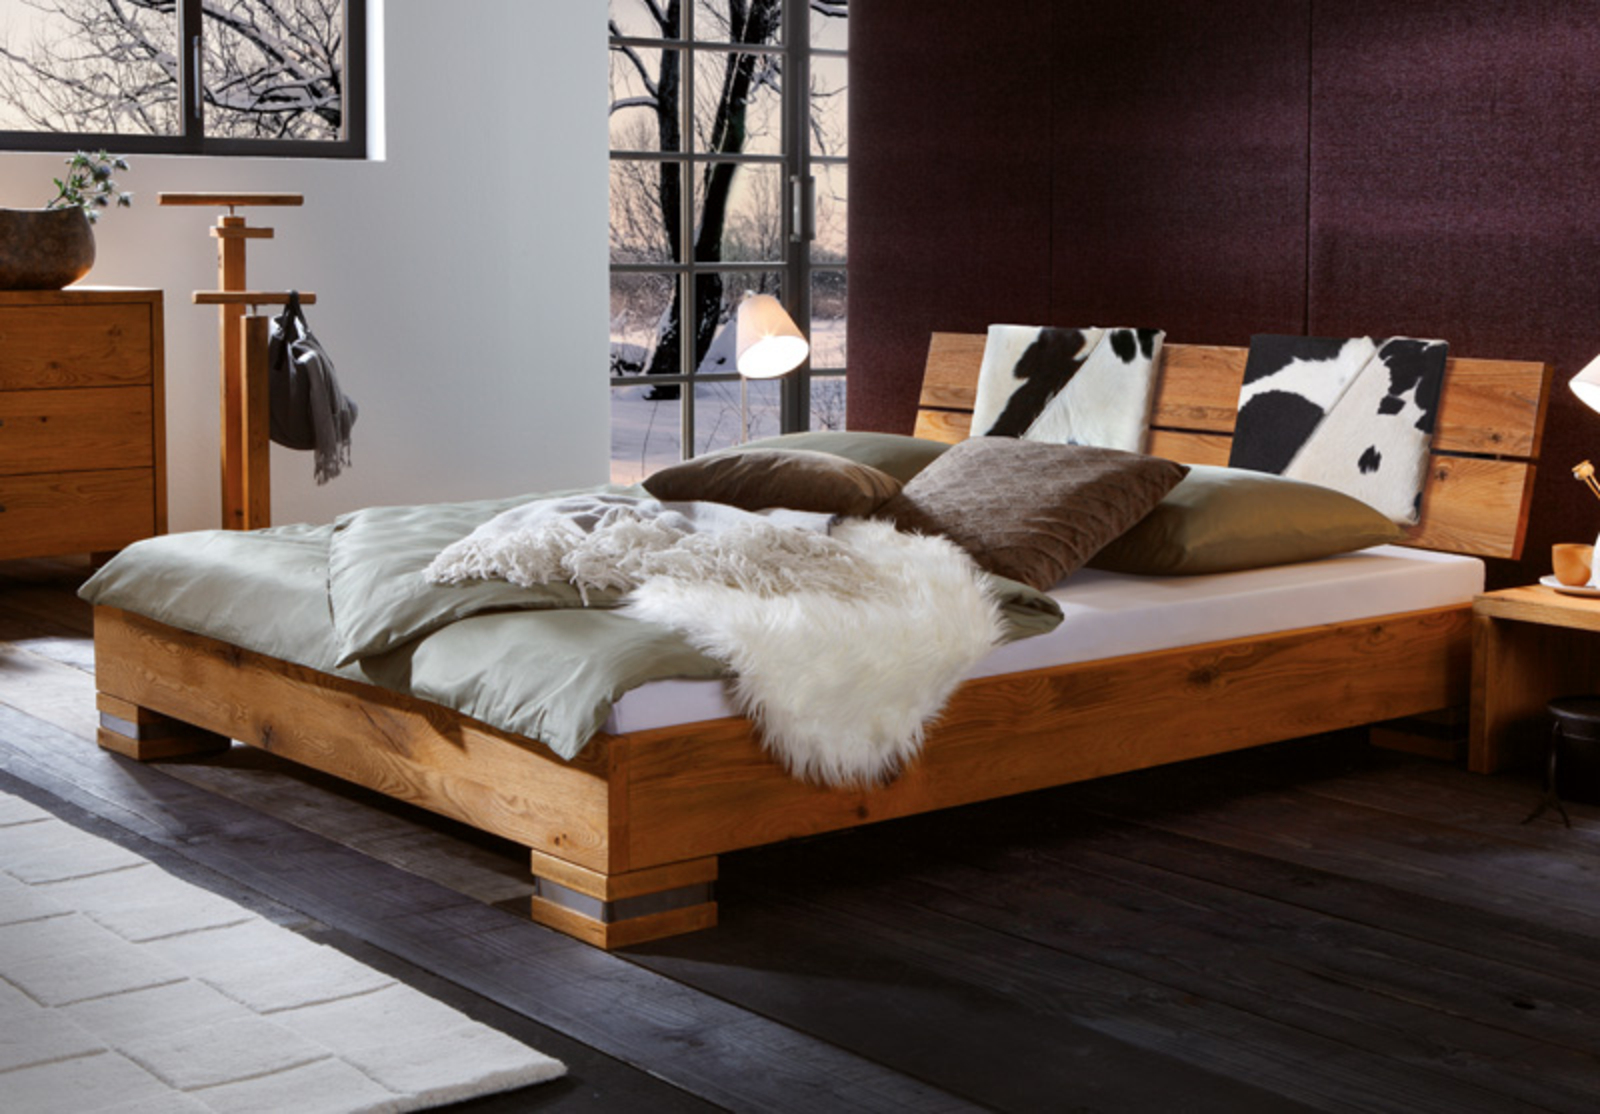 marken bettgestelle betten ott. Black Bedroom Furniture Sets. Home Design Ideas